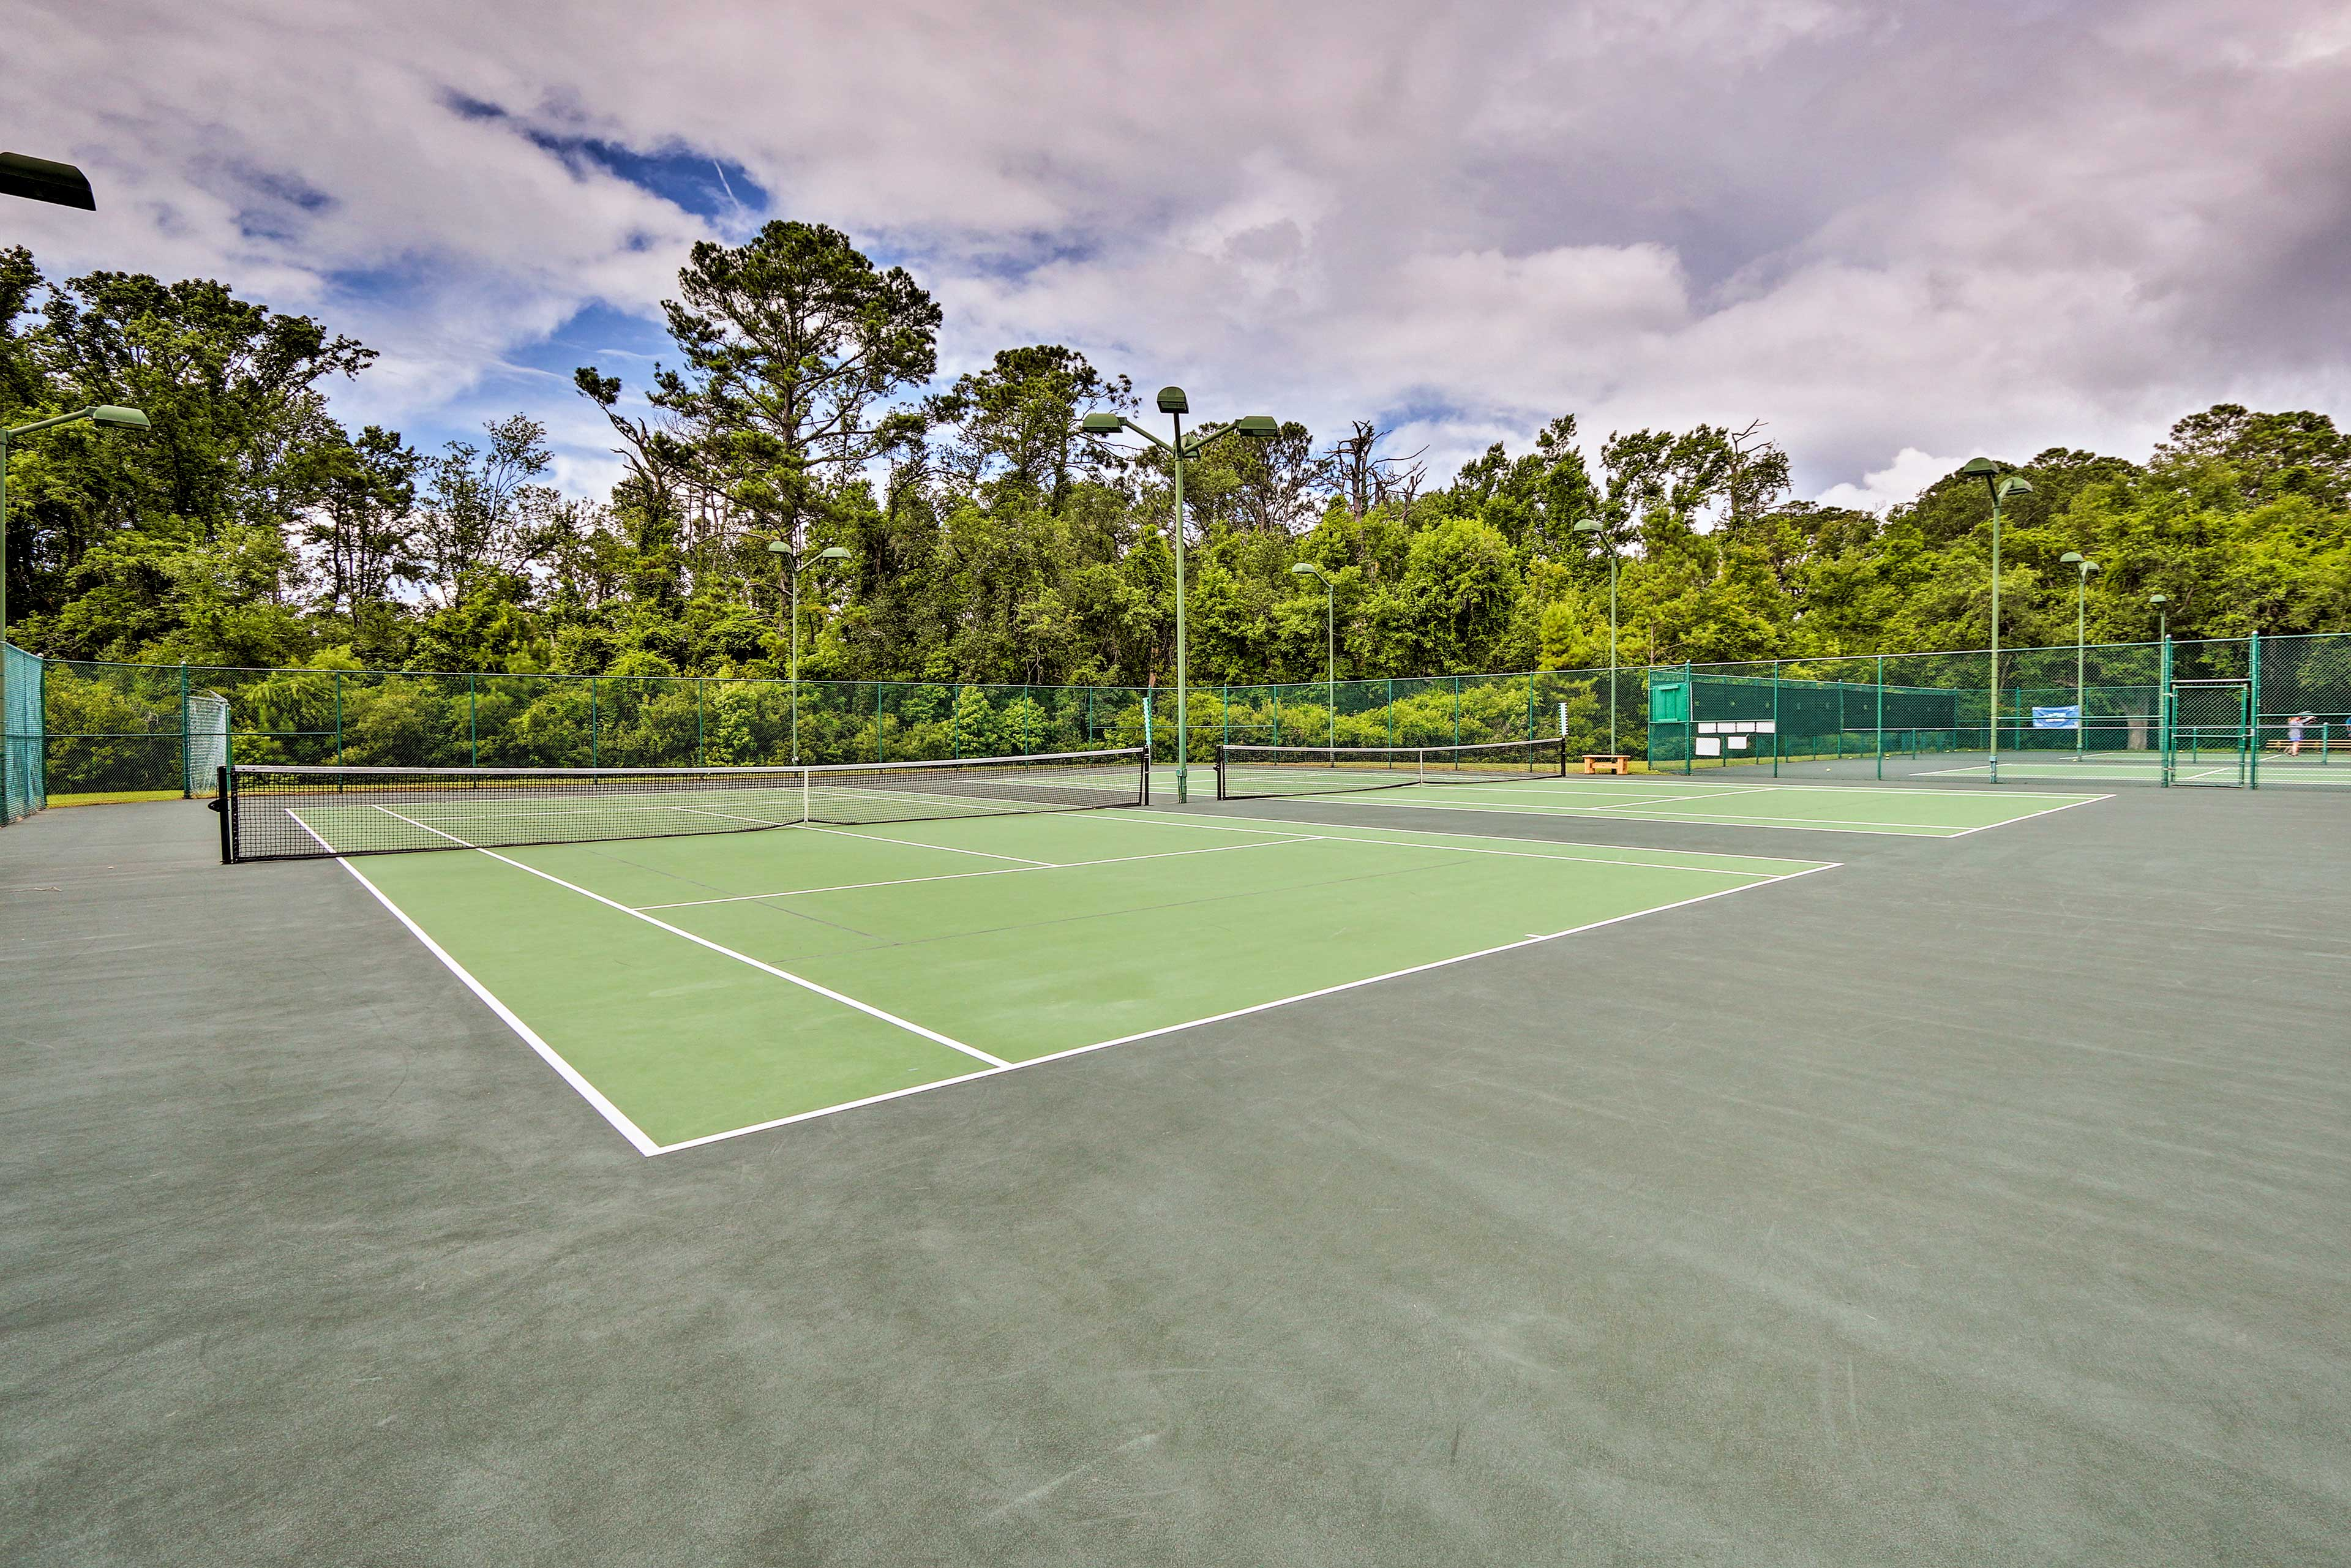 Play a few rounds of tennis.